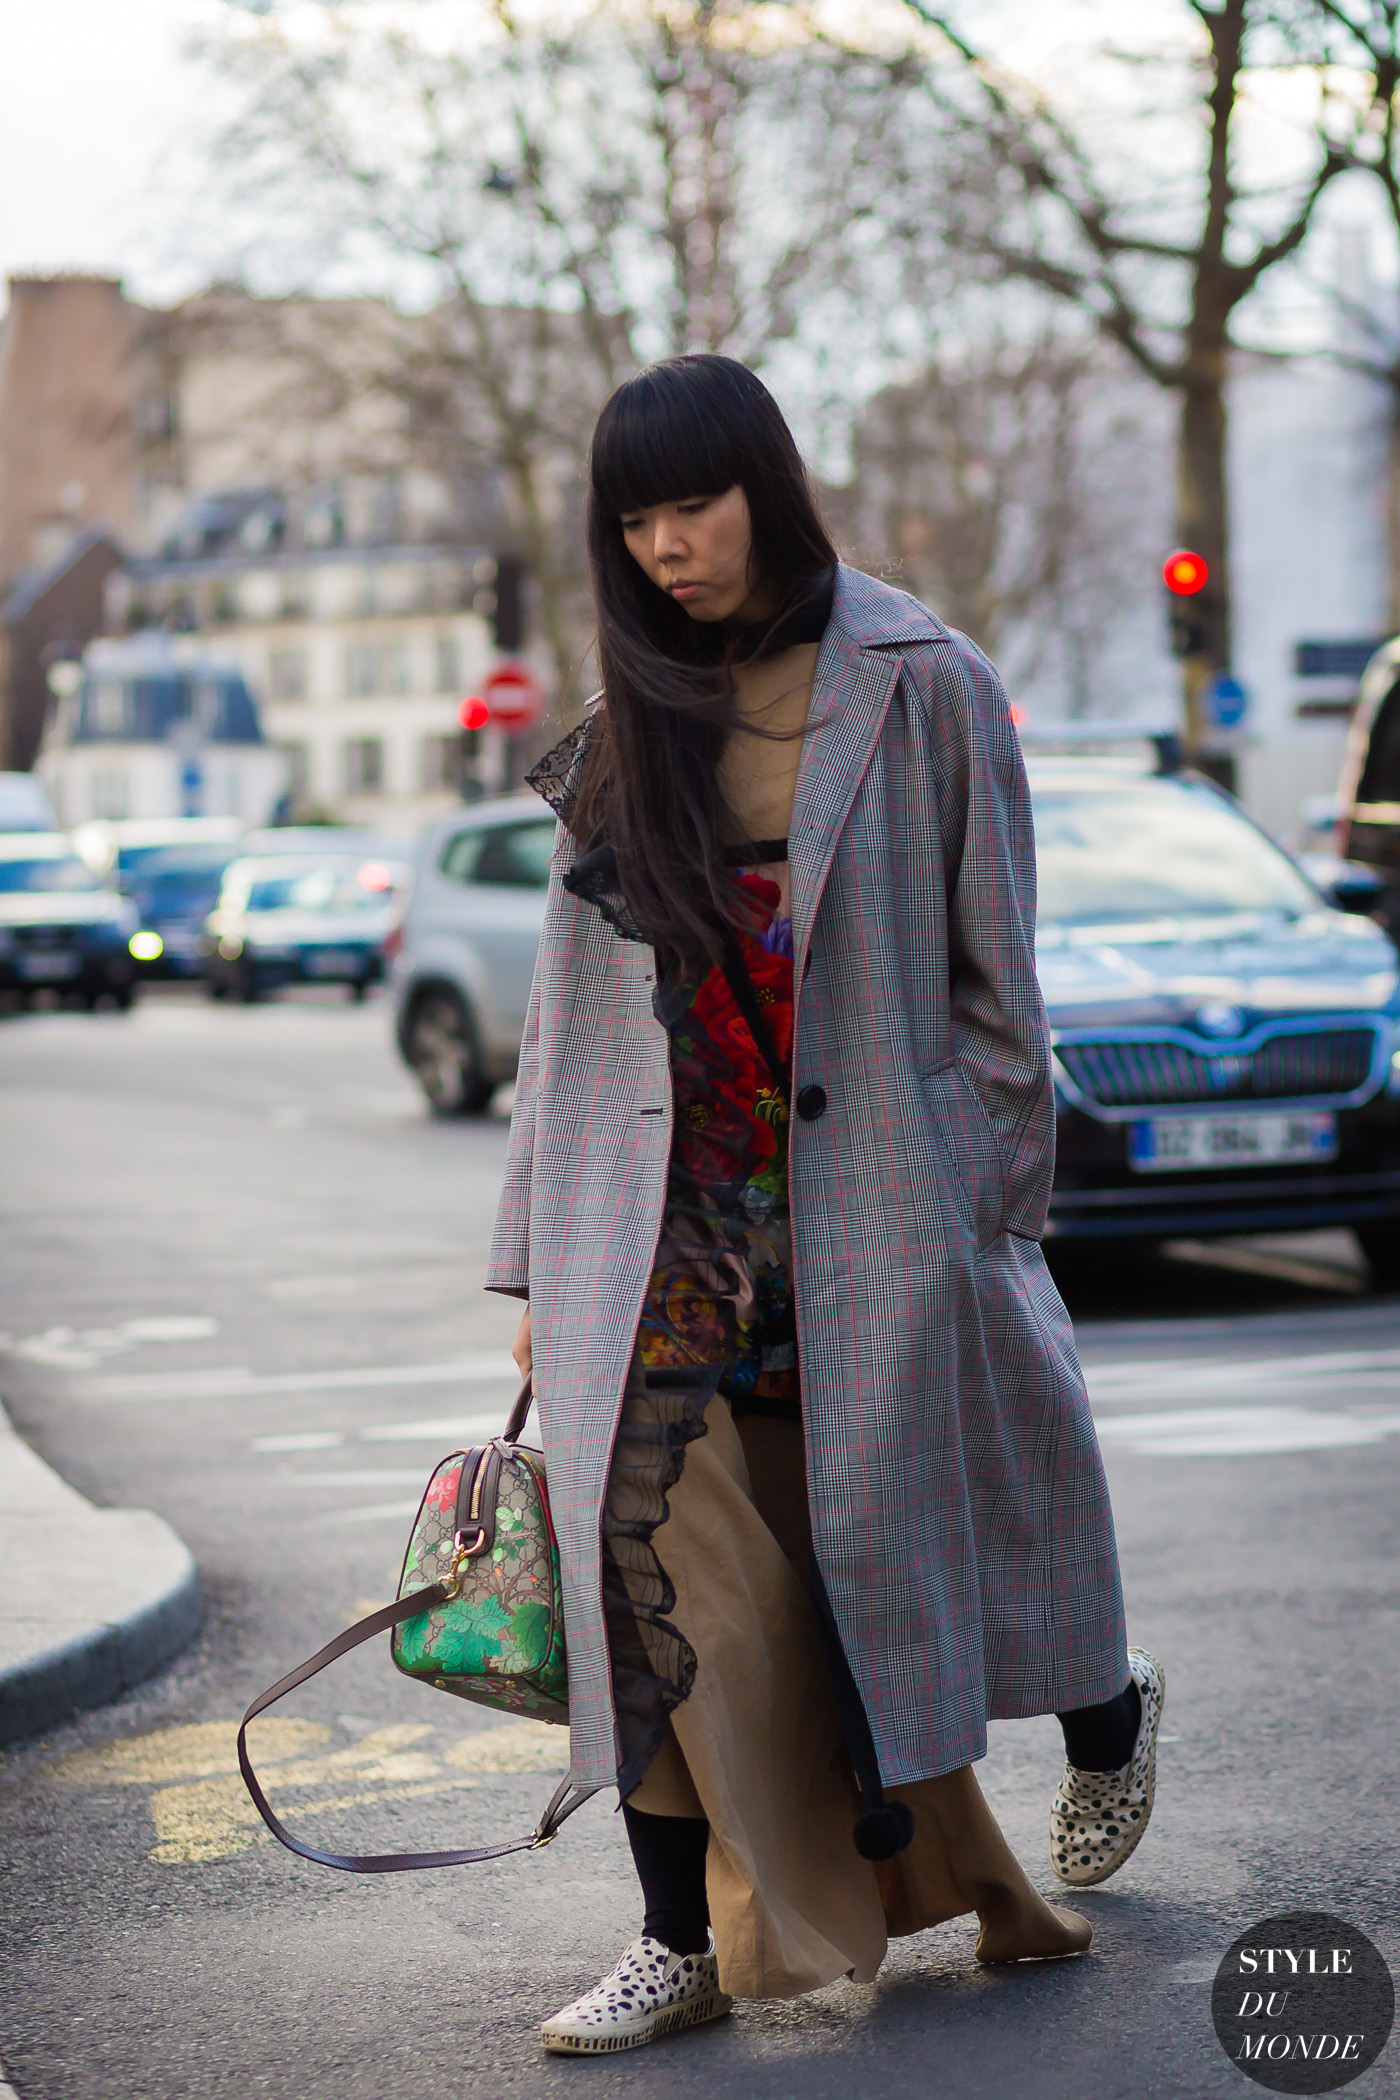 susie-lau-style-bubble-by-styledumonde-street-style-fashion-photography